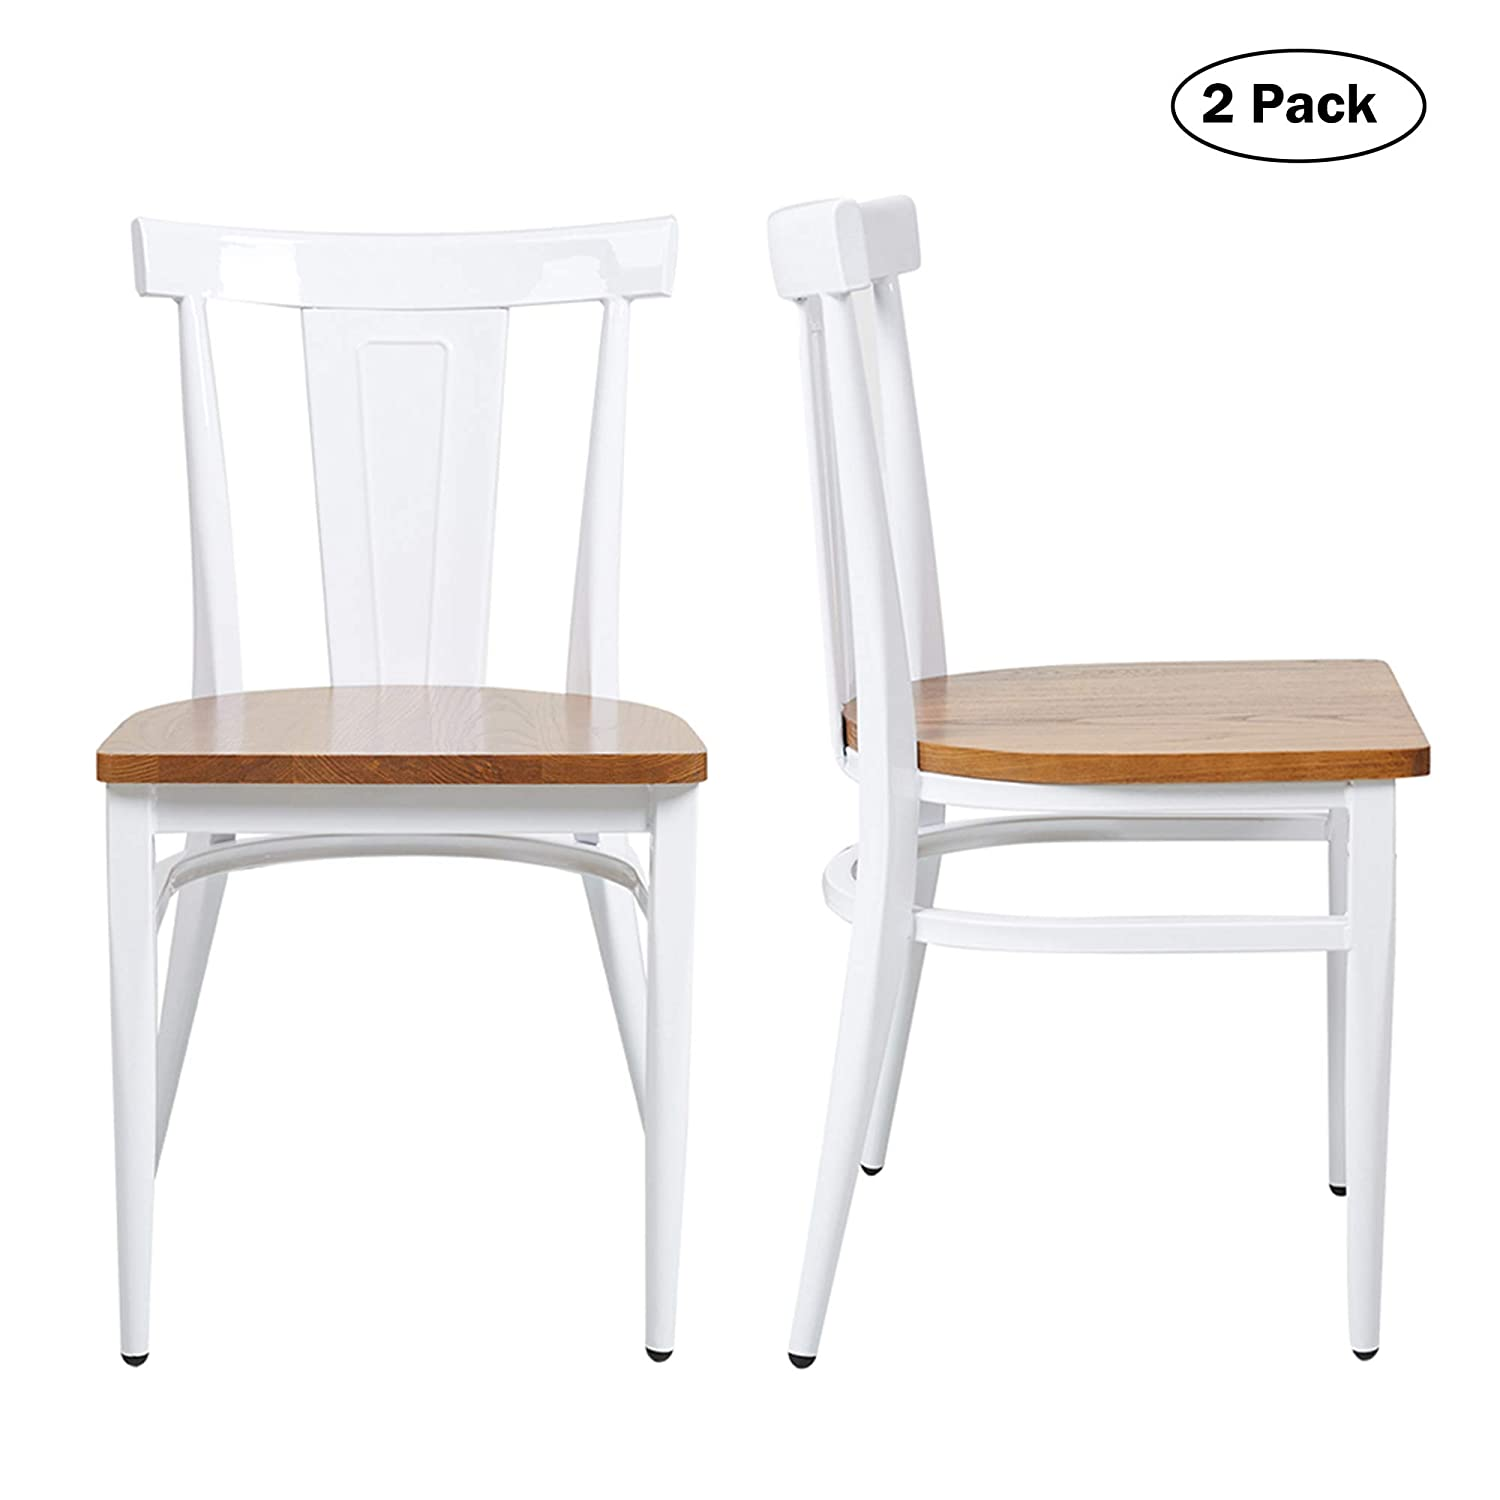 Superb Dining Room Chairs Set Of 2 Wood Seat And Metal Leg Heavy Duty Modern Side Chairs For Kitchen Restaurant Cafe Ergonomic Design White Inzonedesignstudio Interior Chair Design Inzonedesignstudiocom